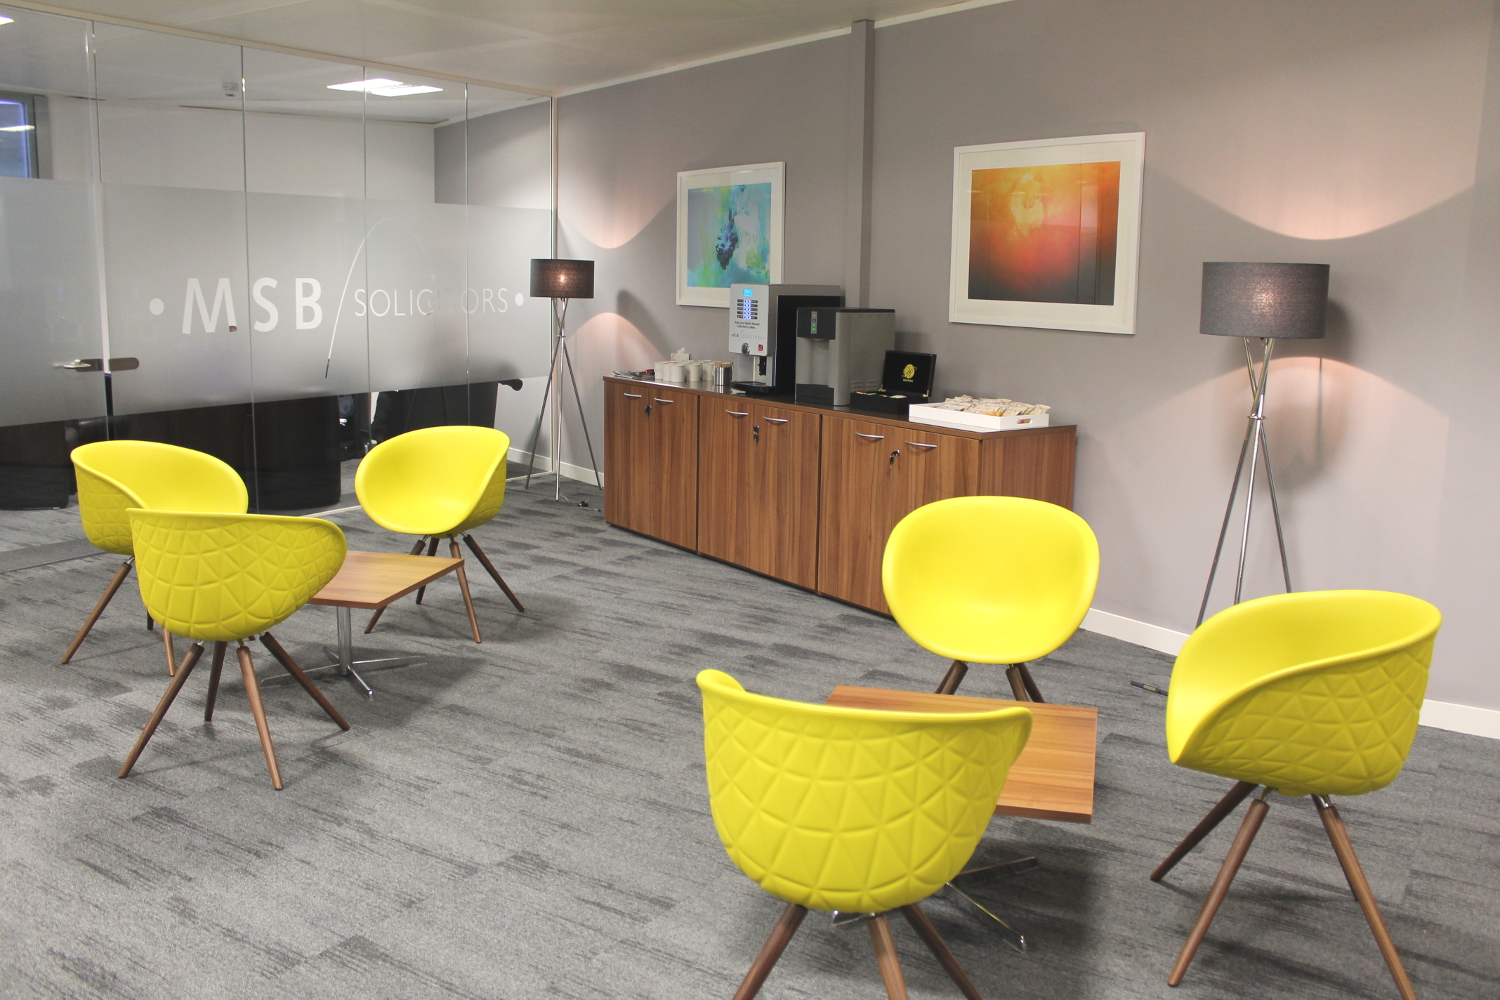 MSB Solicitors Corporate Art Case Study